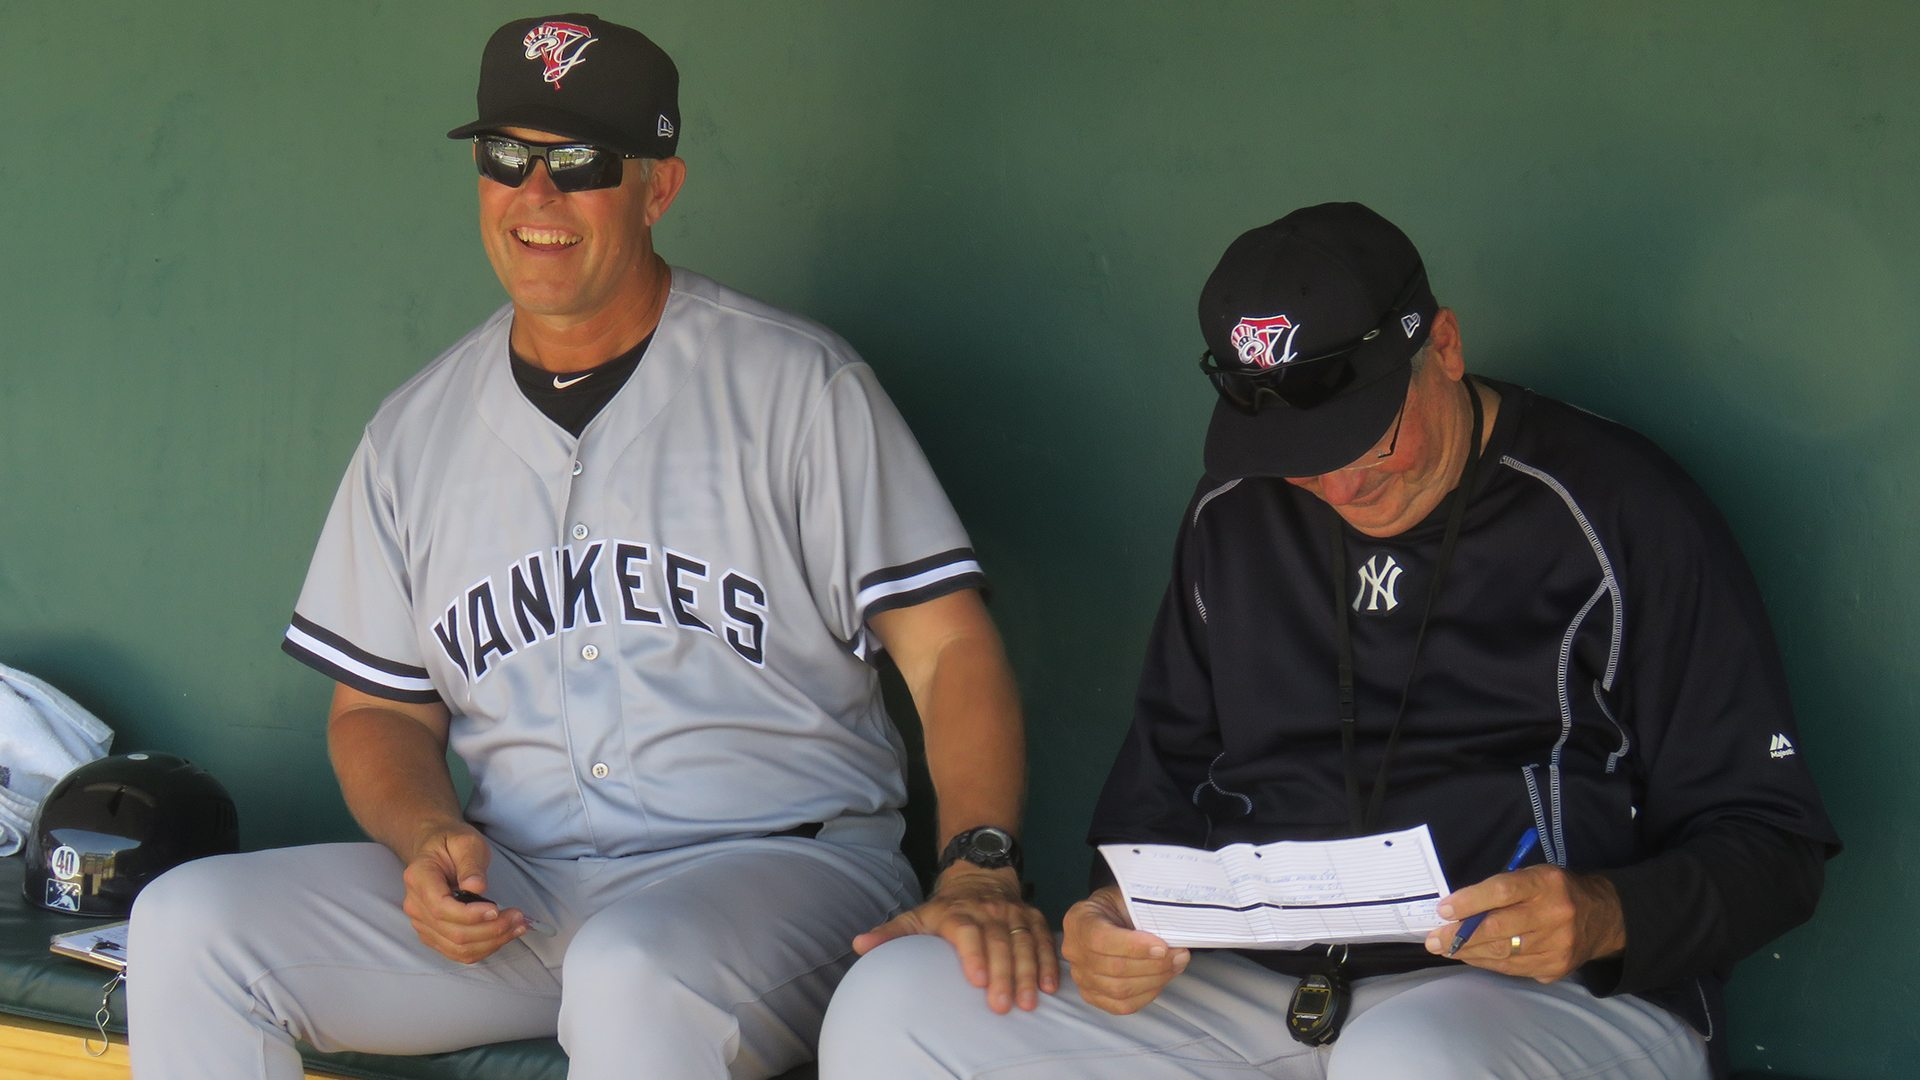 Joe Girardi explains how the Yankees fired him